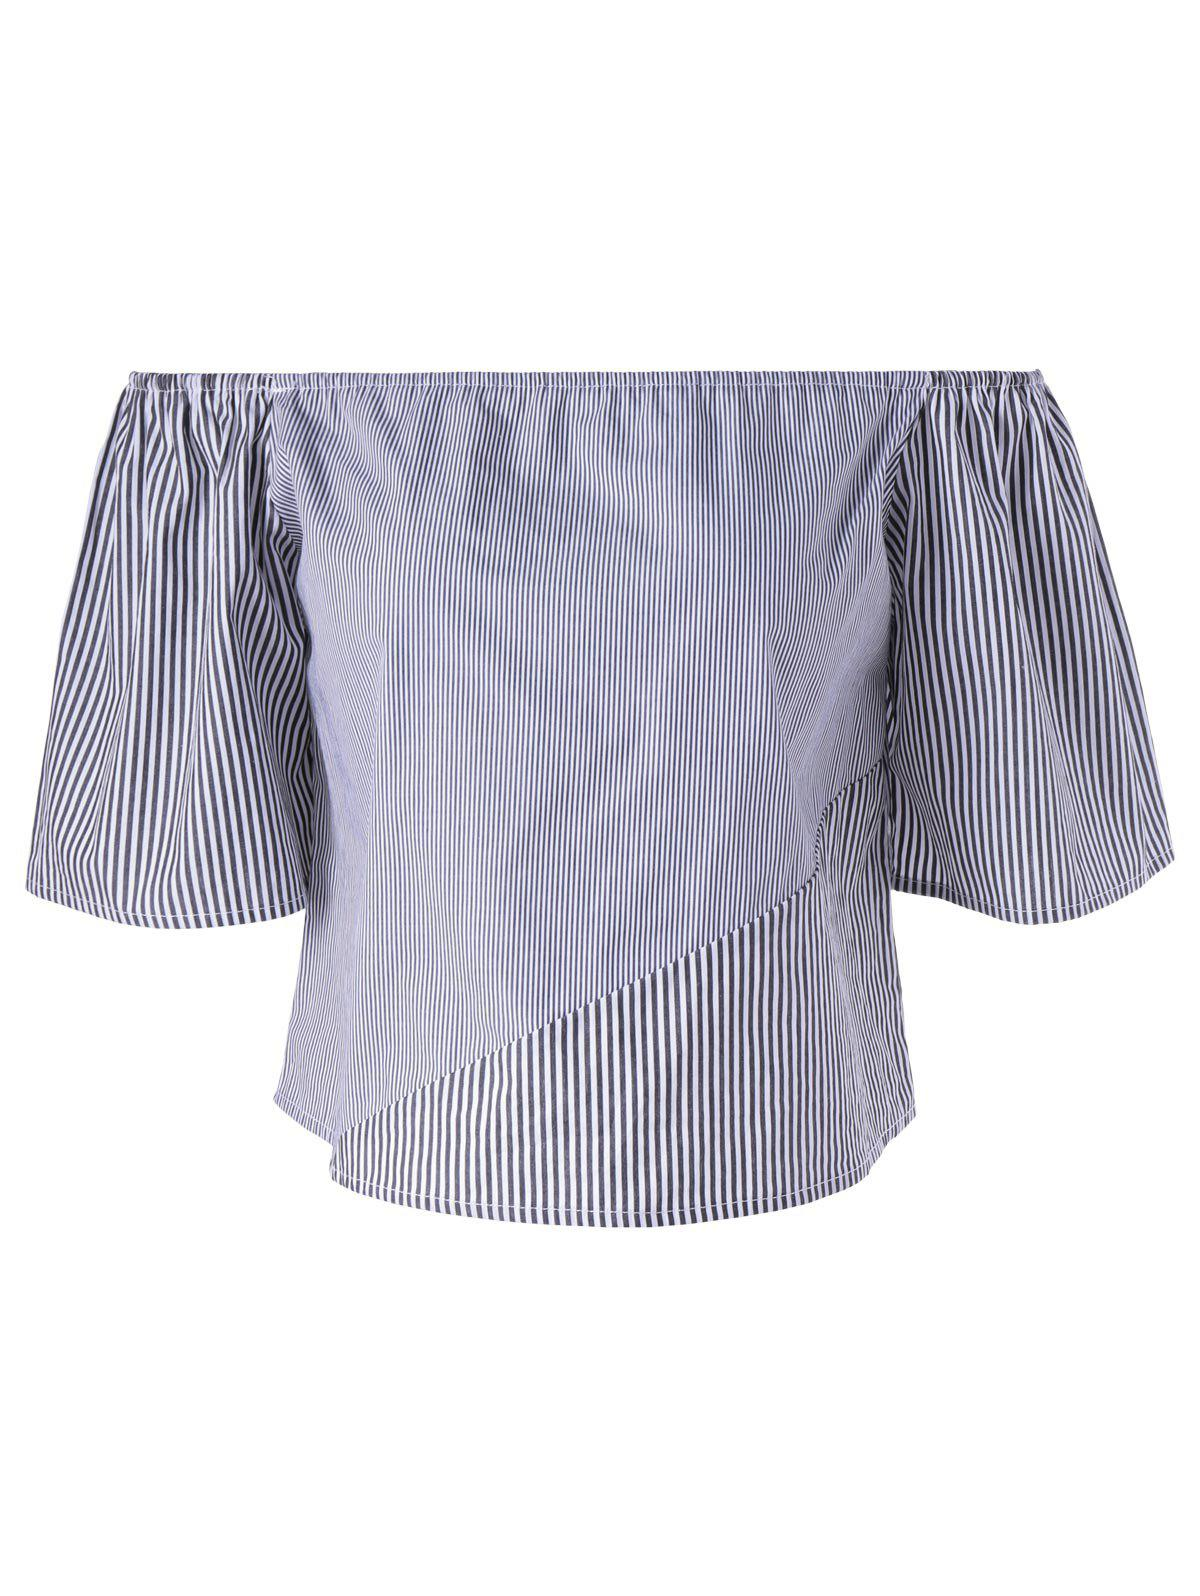 Fashionable Women's Off-The Shoulder 3/4 Sleeve Loose-Fitting Stripe Blouse - STRIPE L